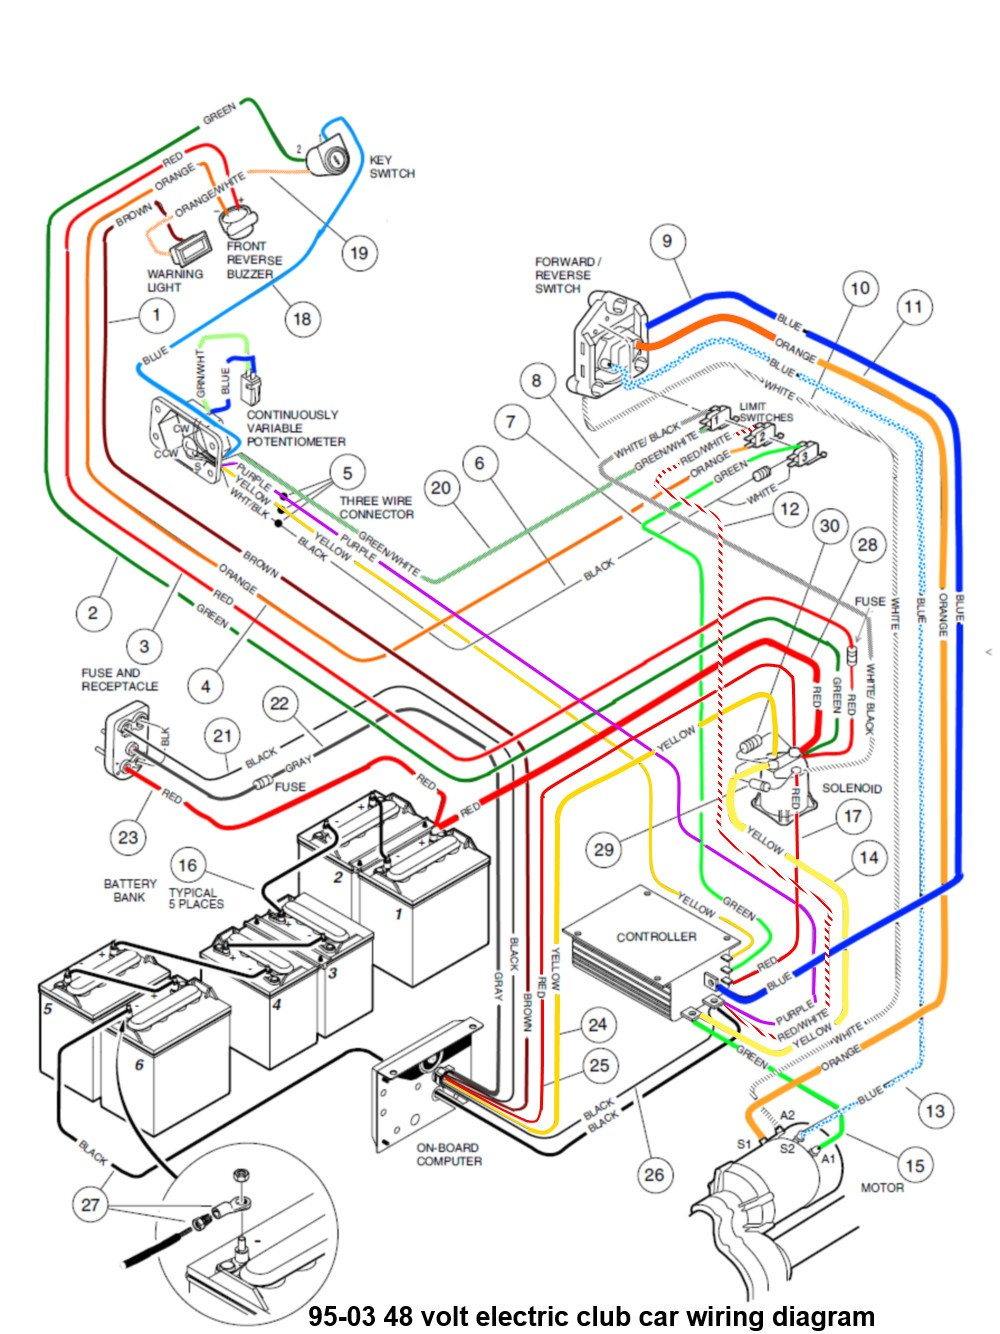 WRG-7792] Craigslist 2008 Ez Go Gas Golf Cart Wiring Diagram on